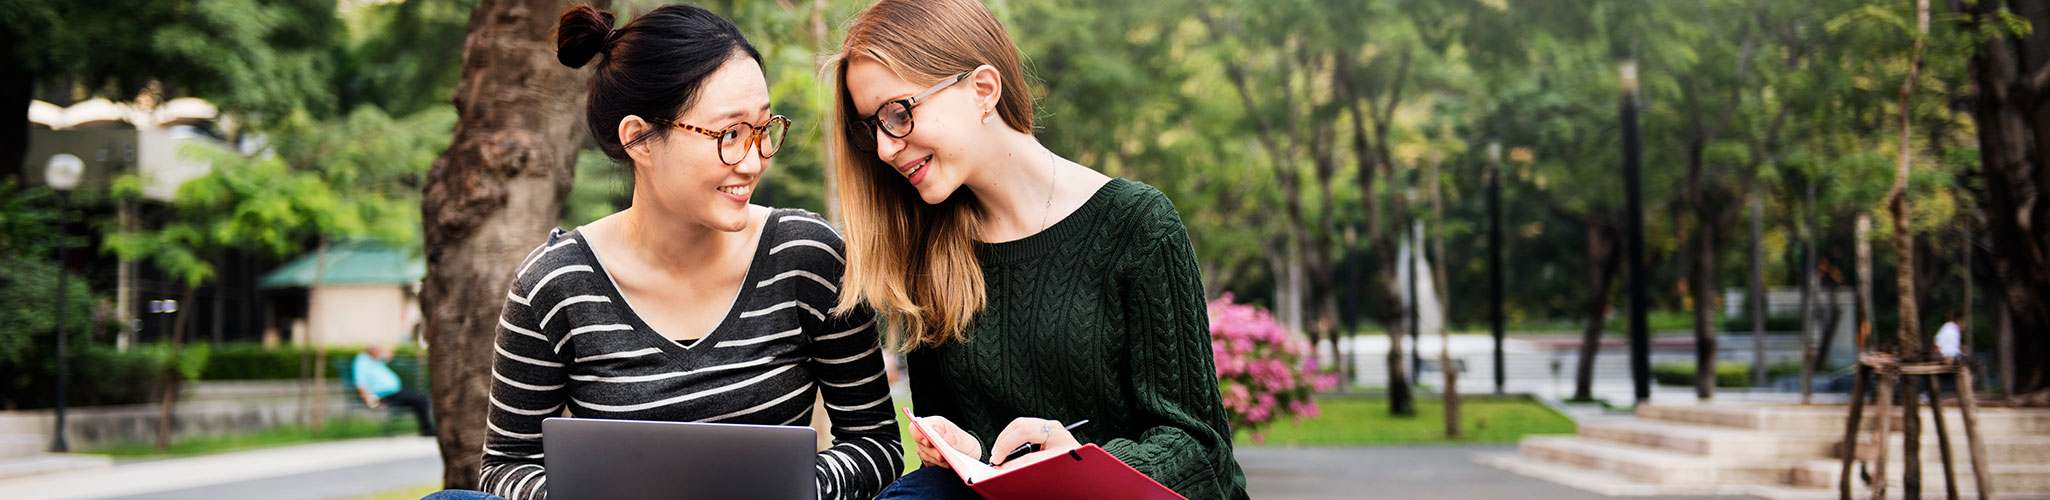 Two students studying on a college campus.